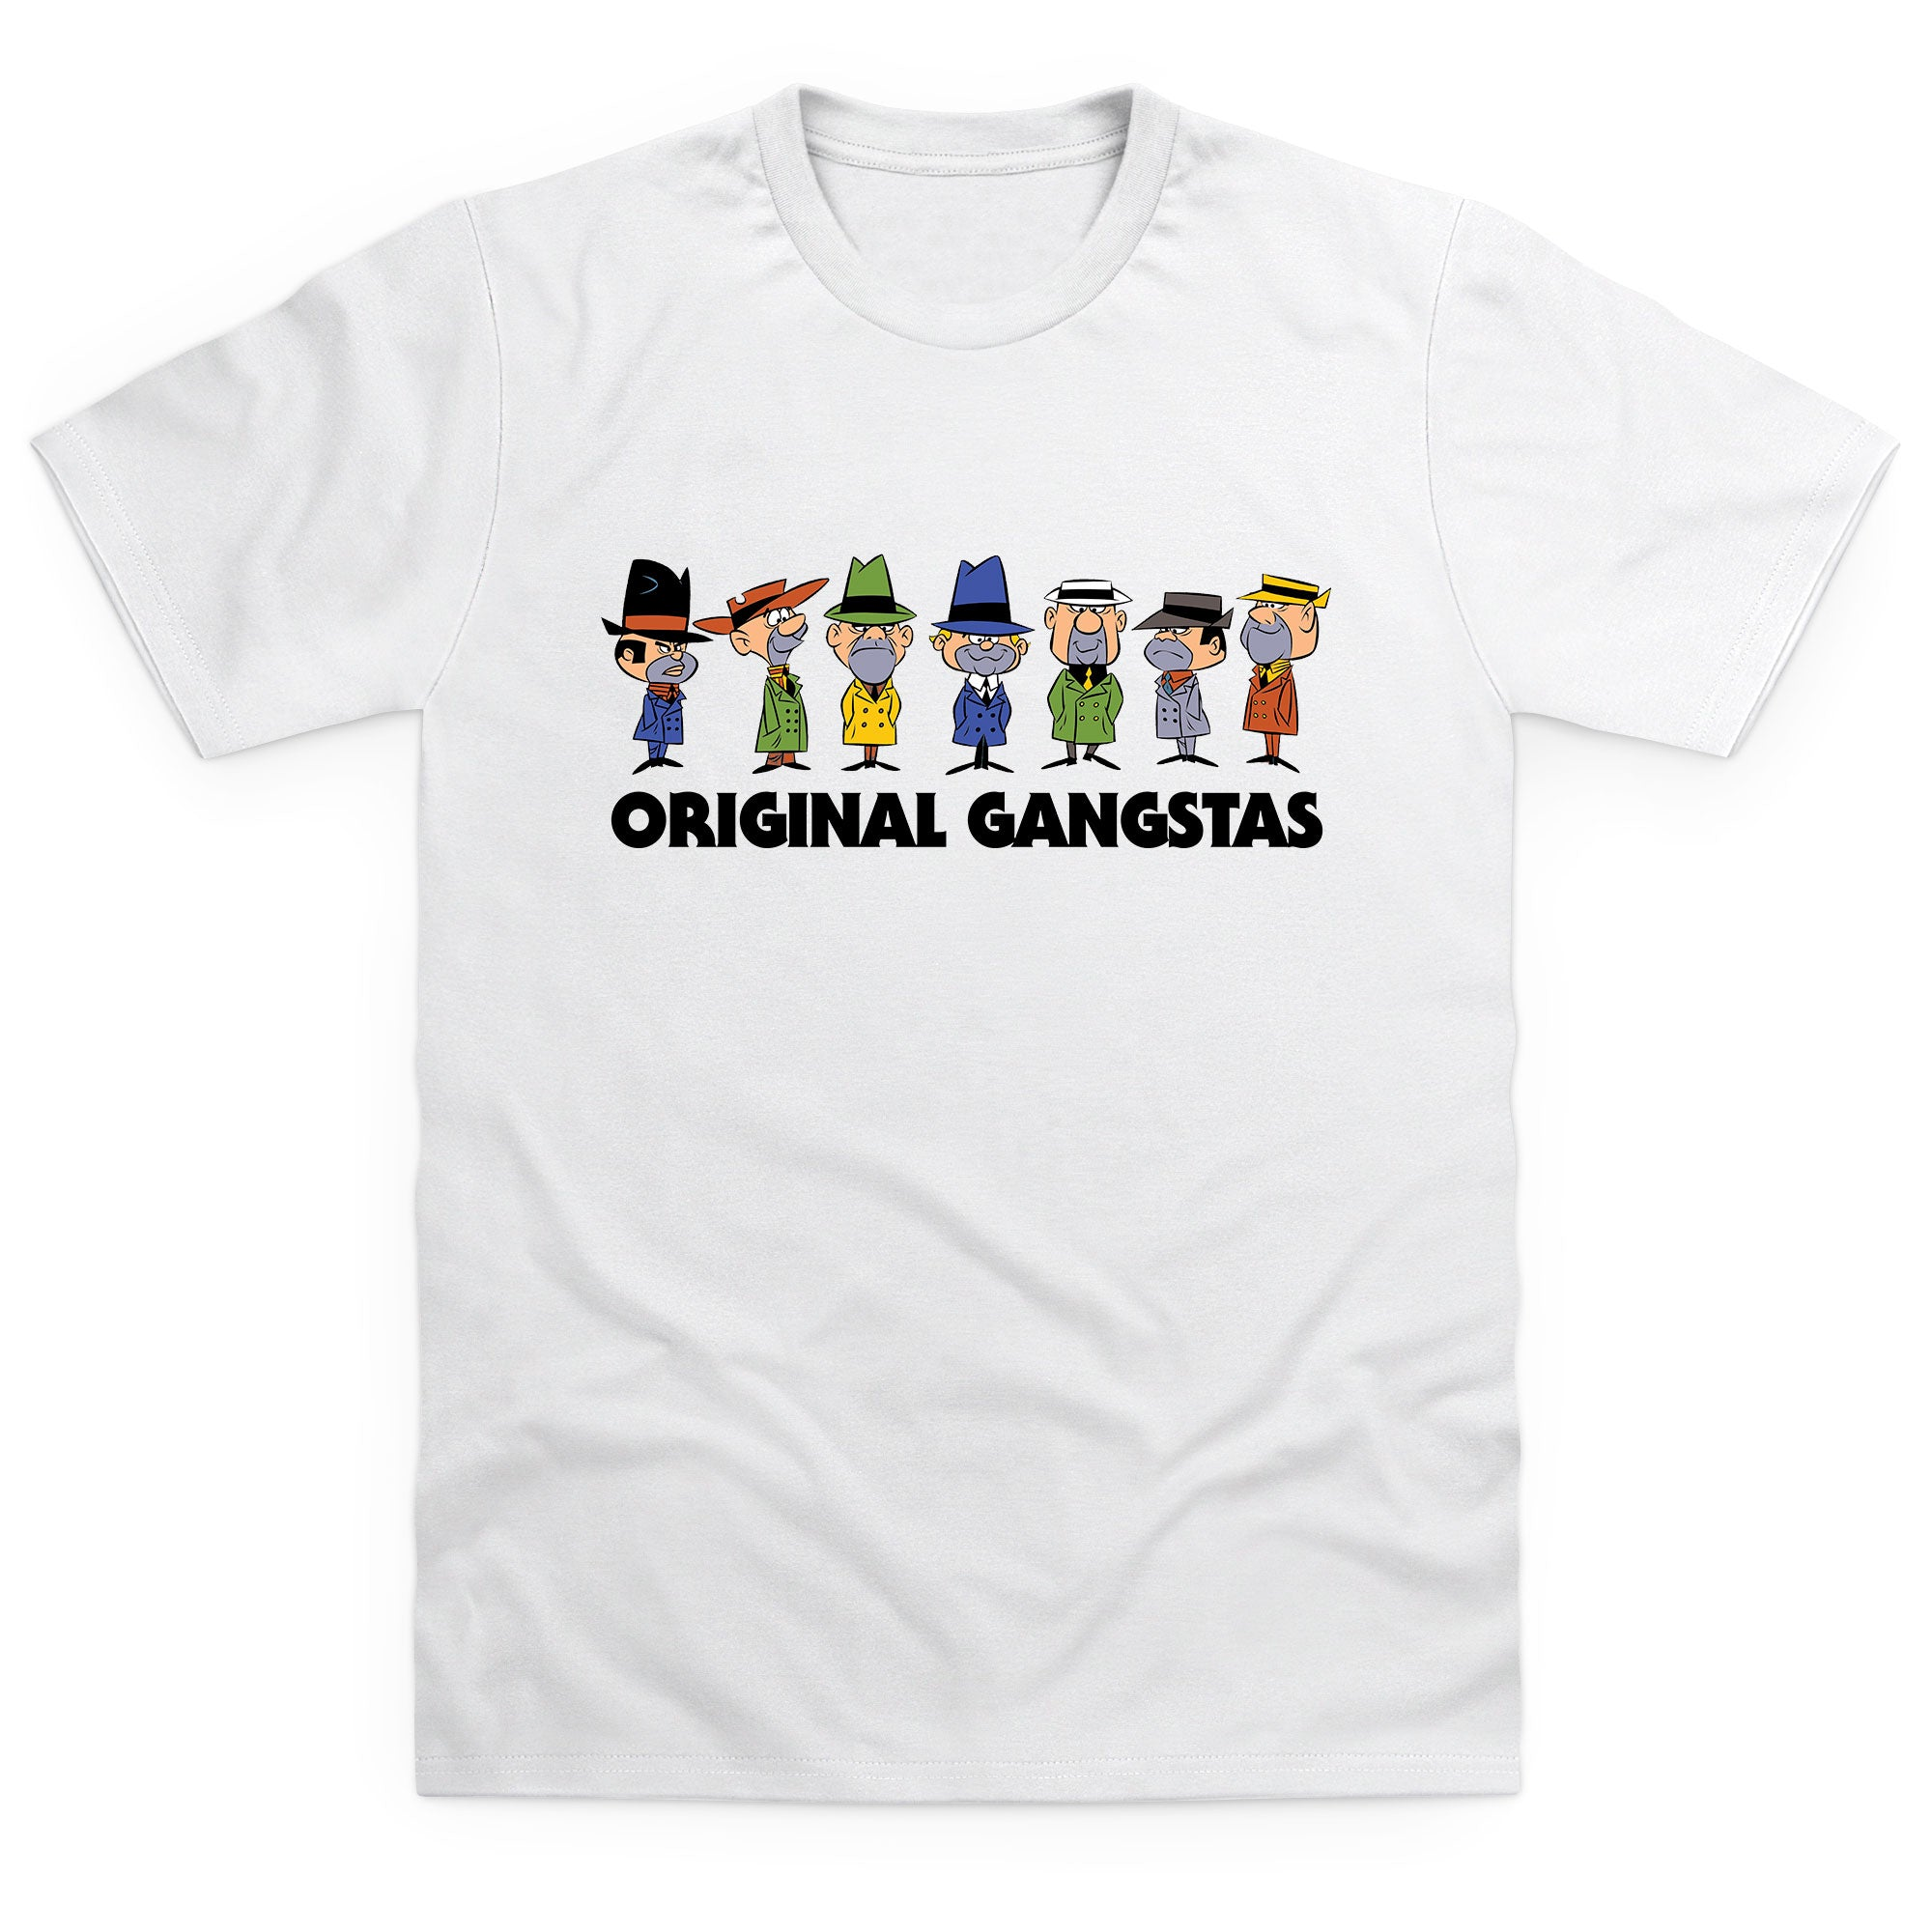 CHEAP Original Gangsters Anthill Mob Kid's T Shirt 25874570421 – Clothing Accessories